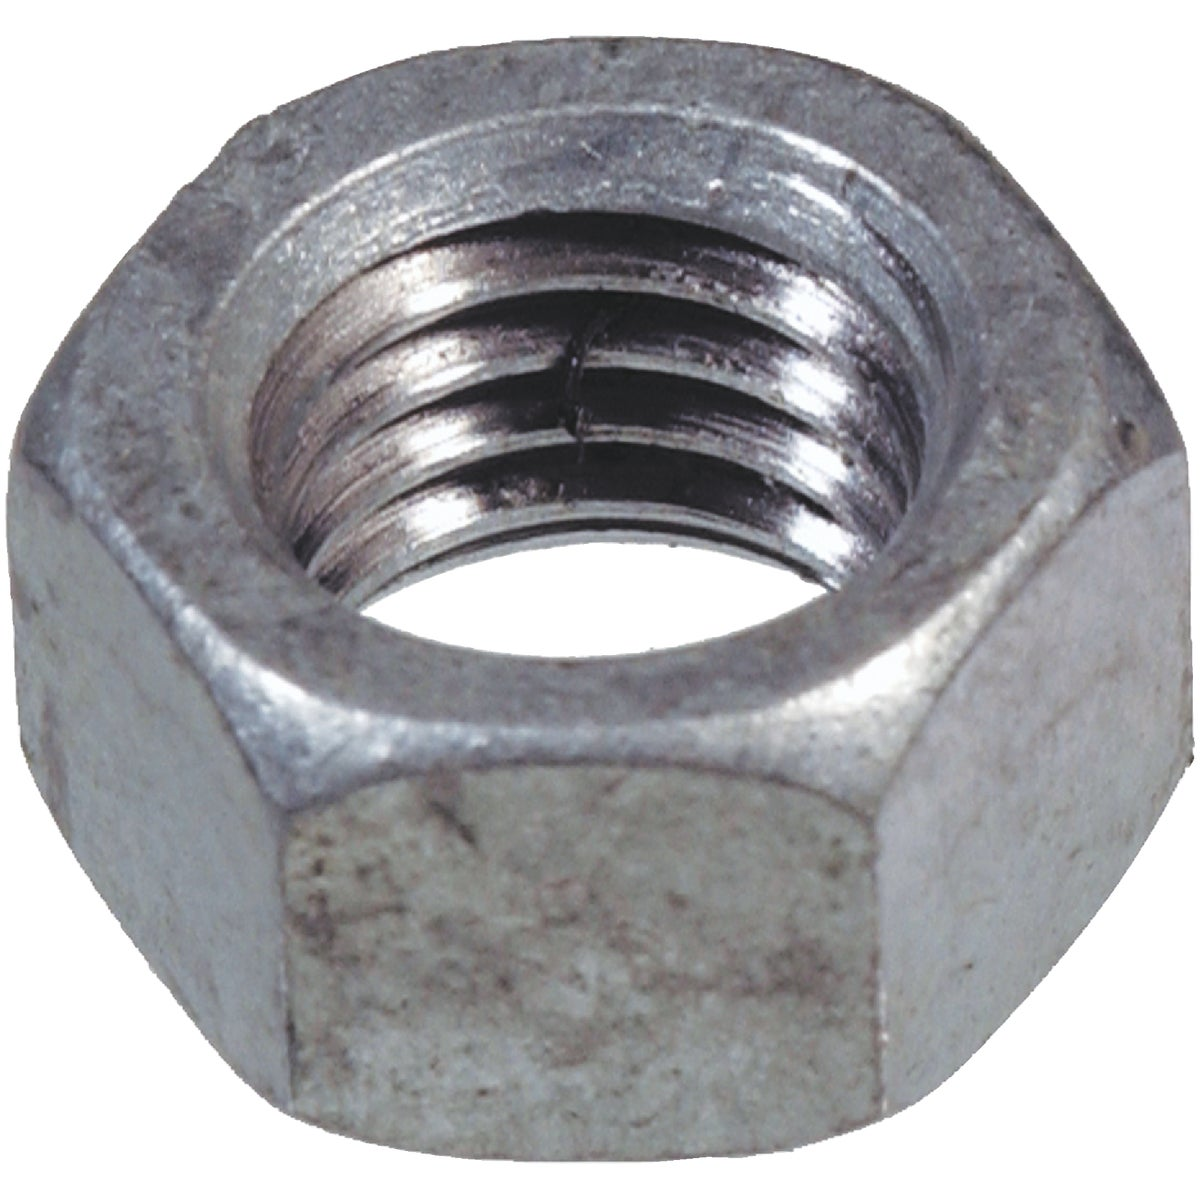 20PC 3/4-10 GALV HEX NUT - 810518 by Hillman Fastener